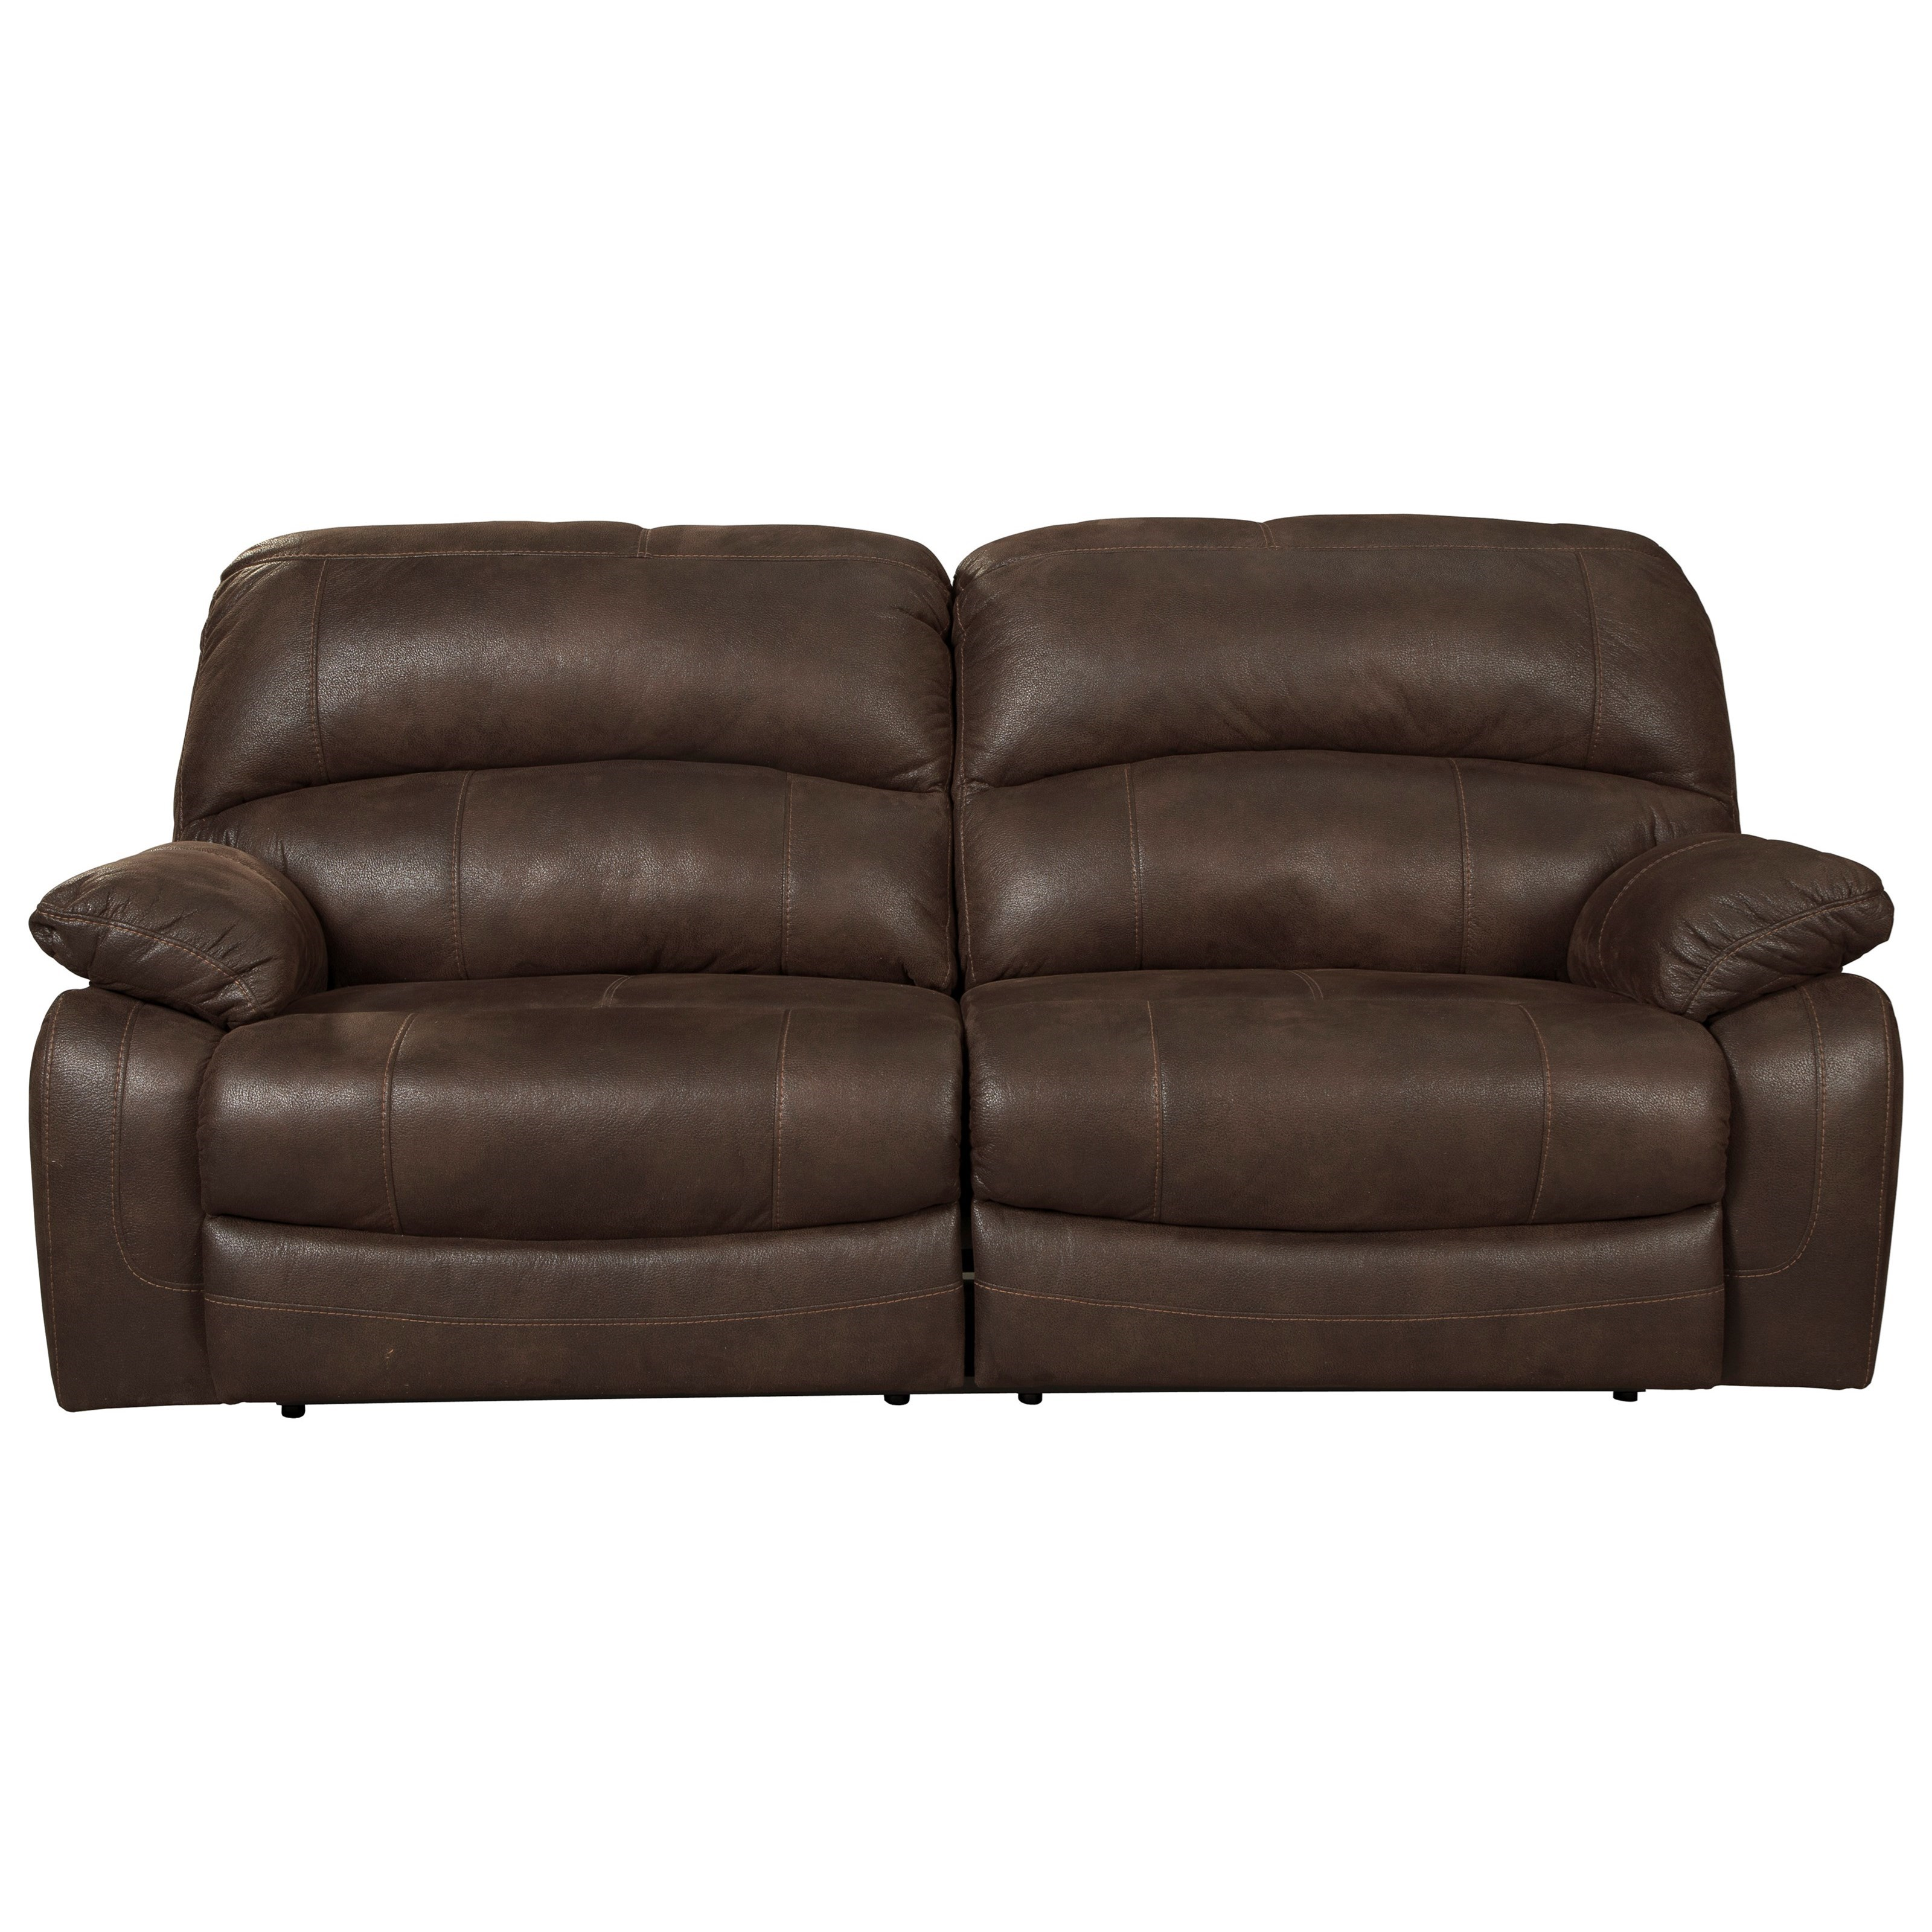 Signature Design by Ashley Zavier 2 Seat Reclining Sofa in Brown